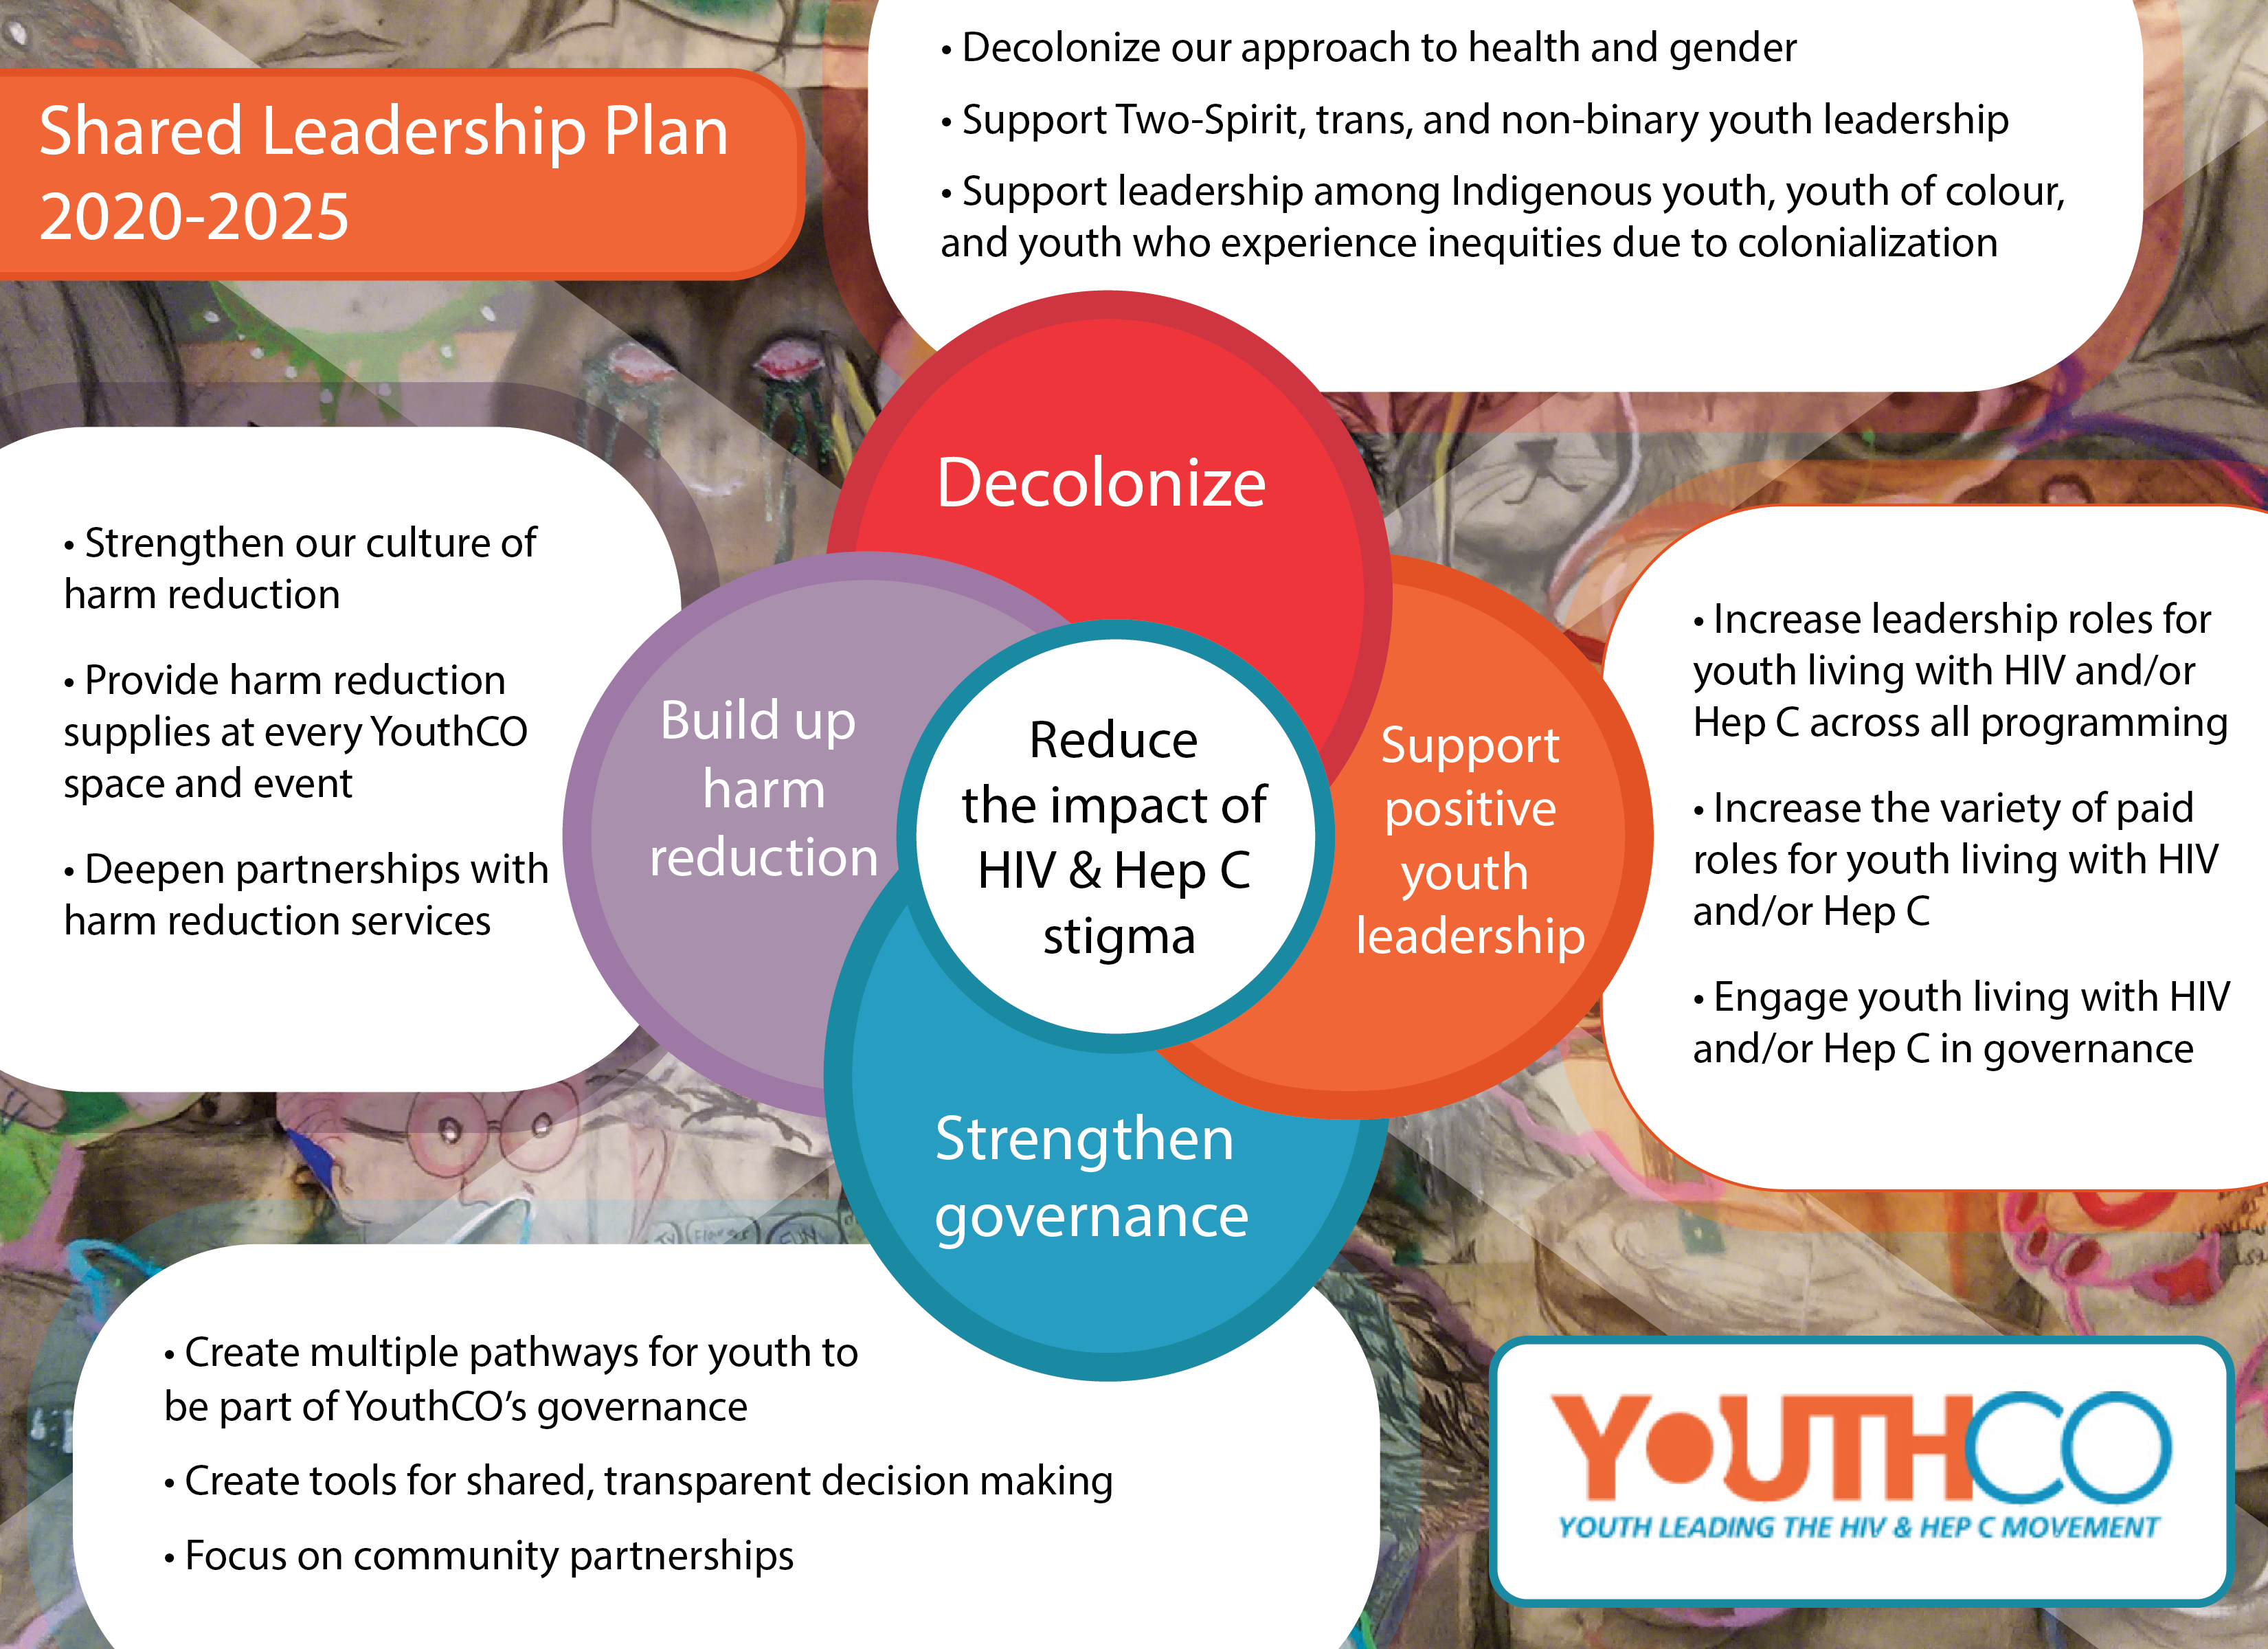 YouthCO's mission, reduce the impact of HIV and Hep C stigma on youth, is in the middle of this image. It is surrounded by four overlapping programmatic goals: decolonize, support positive youth leadership, strengthen governance, and build up harm reduction. Connected to each priority are three more specific operational goals, listed at the bottom of this page.